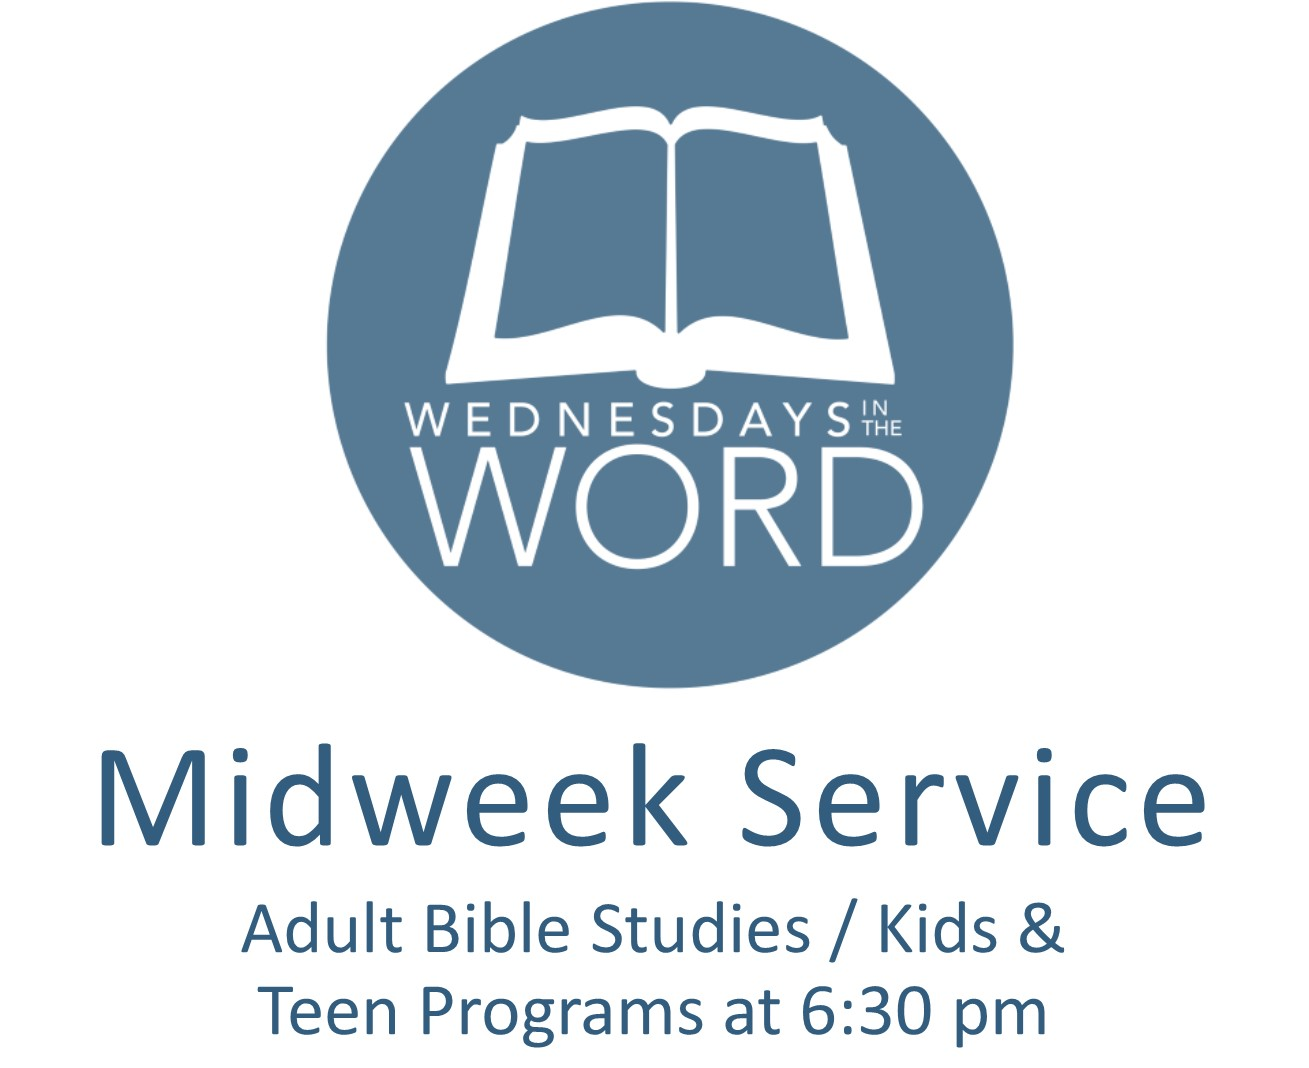 Midweek Groups for Adults, Teens, and Children